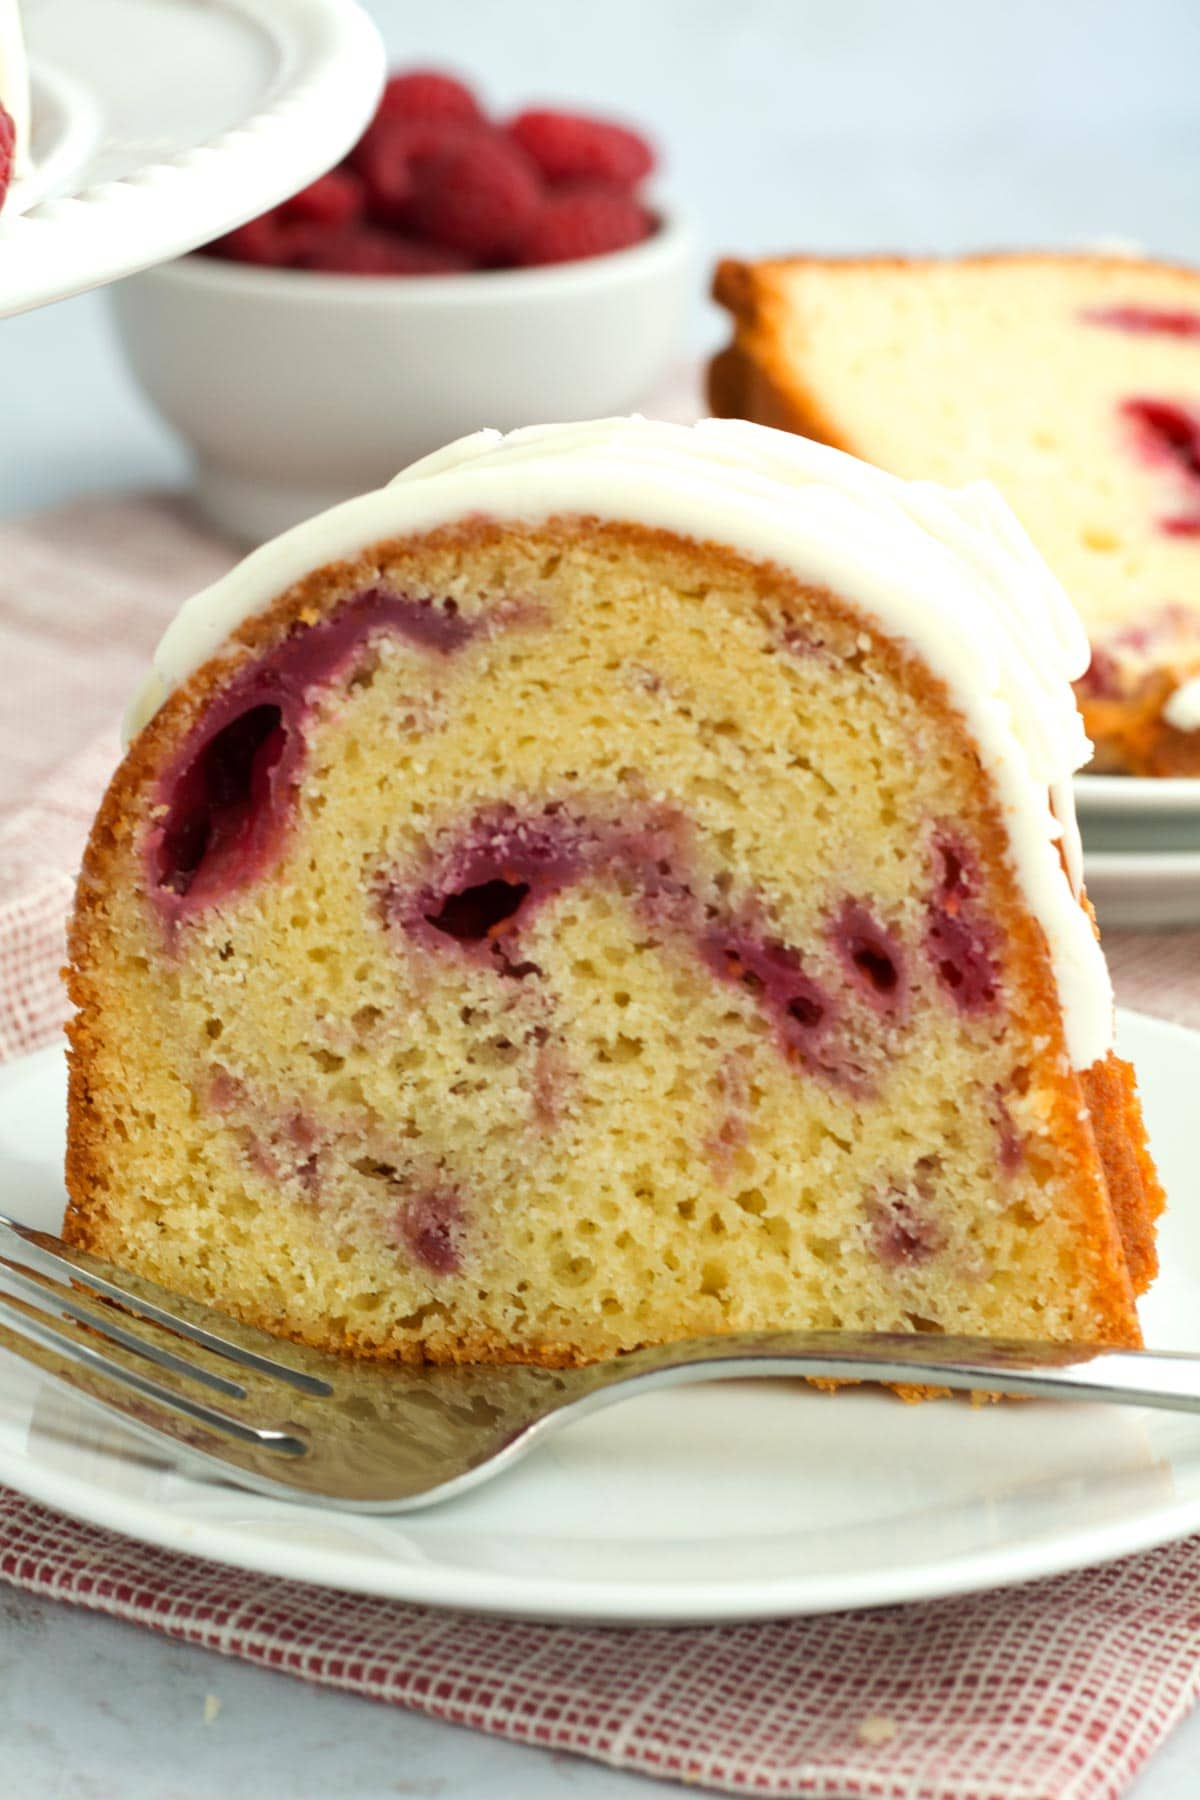 A piece of white chocolate raspberry cake after baking in a bundt pan served on a plate.